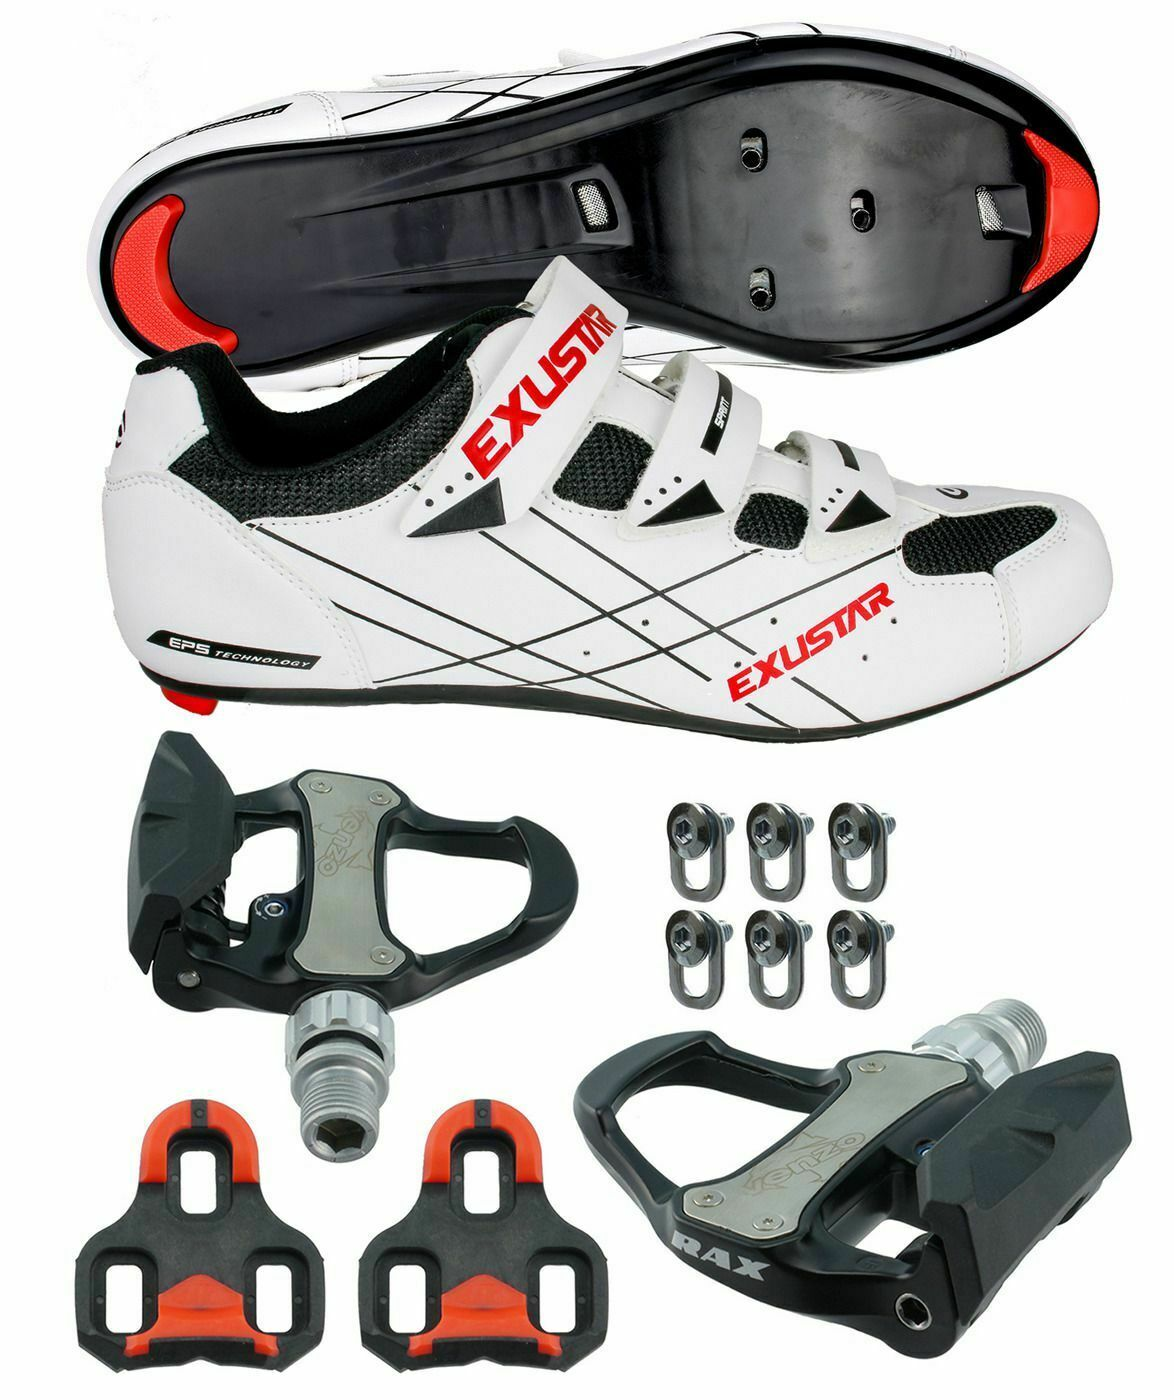 E-SR493 Road Bike Shoes VENZO Look Keo Pedals & Cleats Size 46